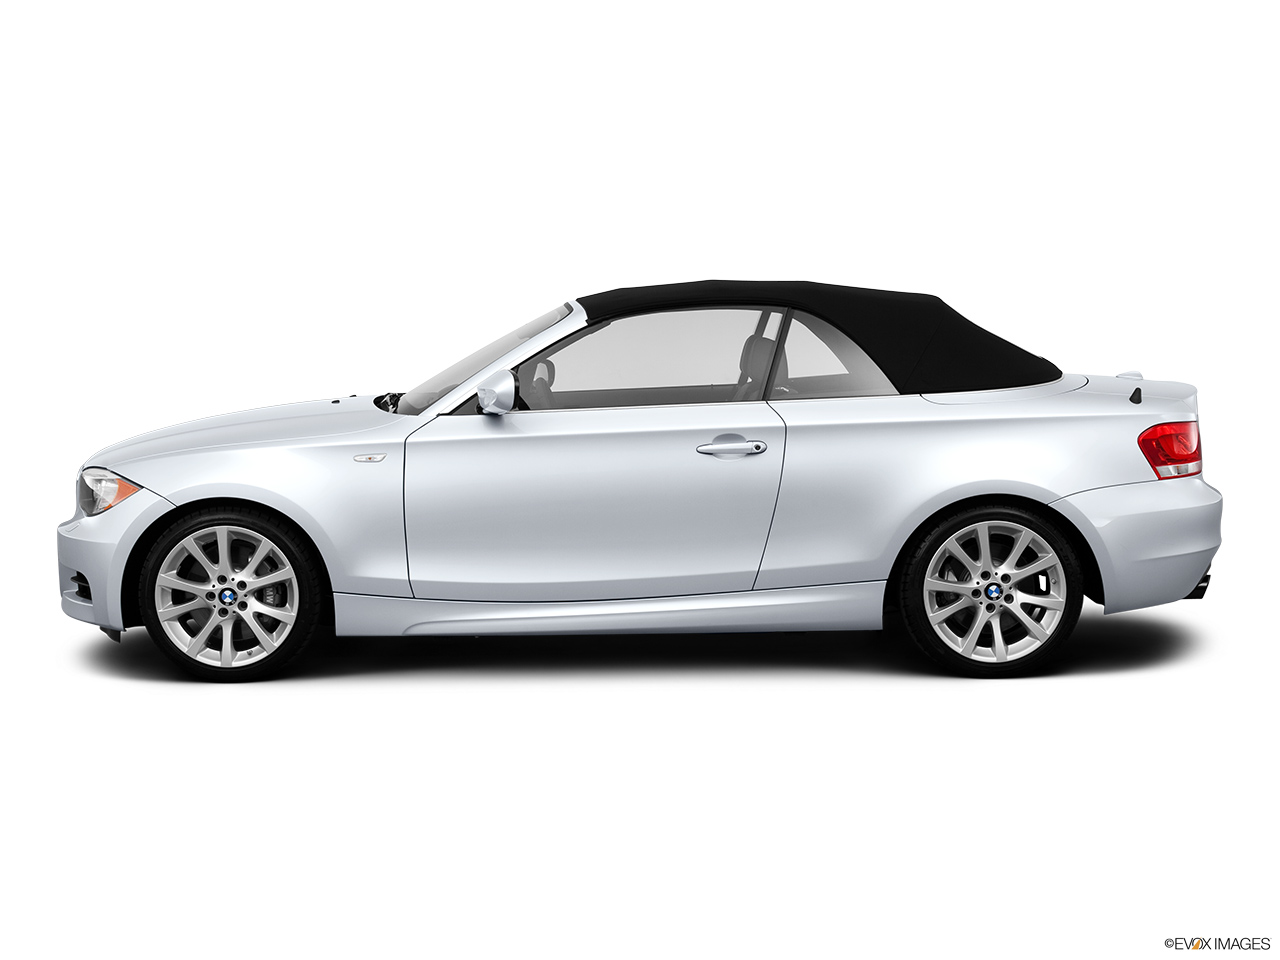 black bmw convertible 2013. 2013 bmw 1 series convertible 135is drivers side profile top up convertibles black bmw